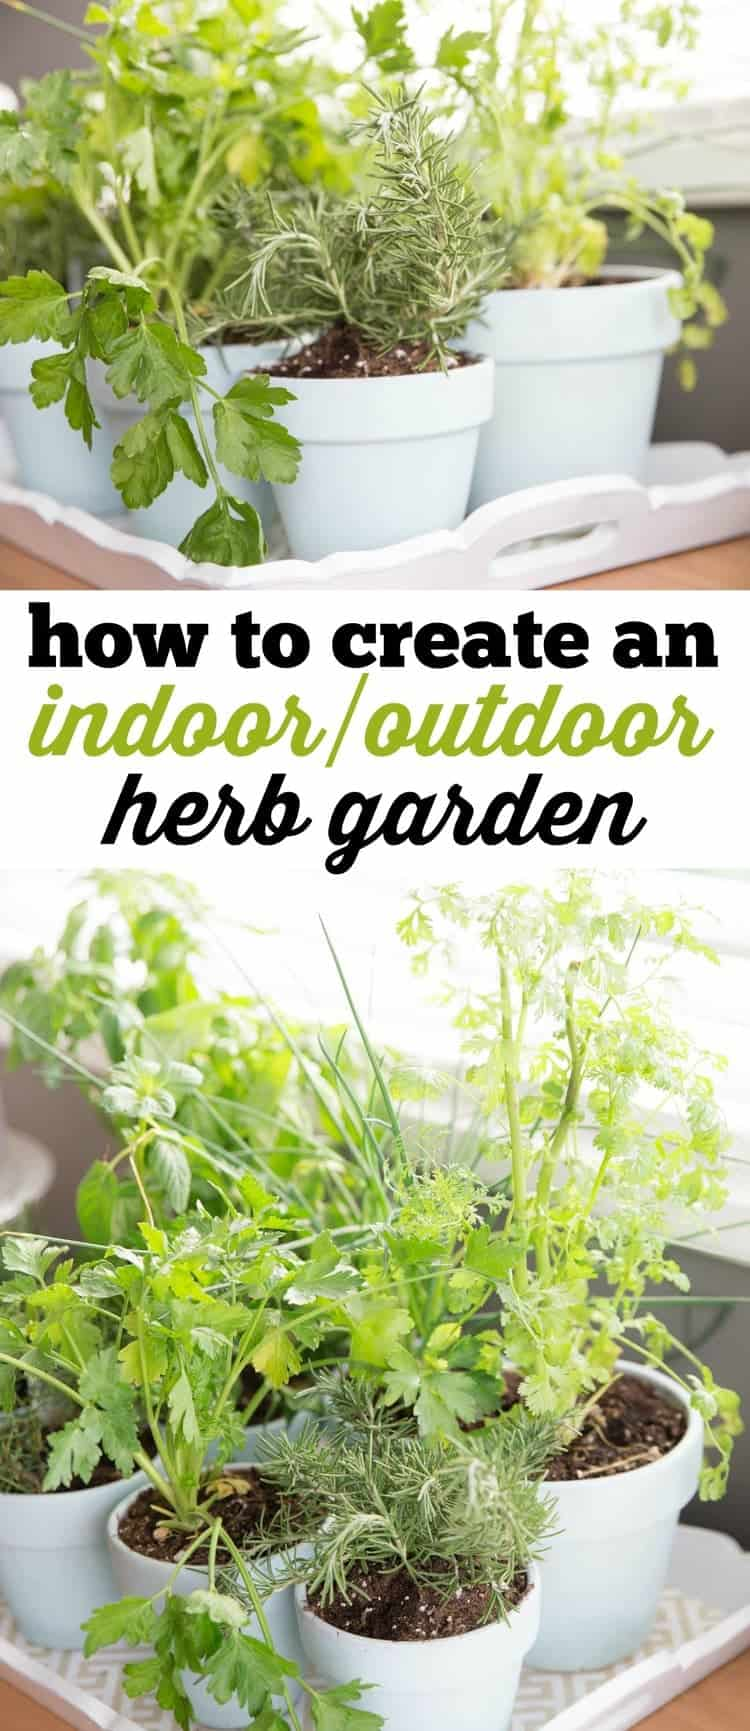 How To Make An Indoor Outdoor Herb Garden And A Basil Peach Whiskey Cocktail